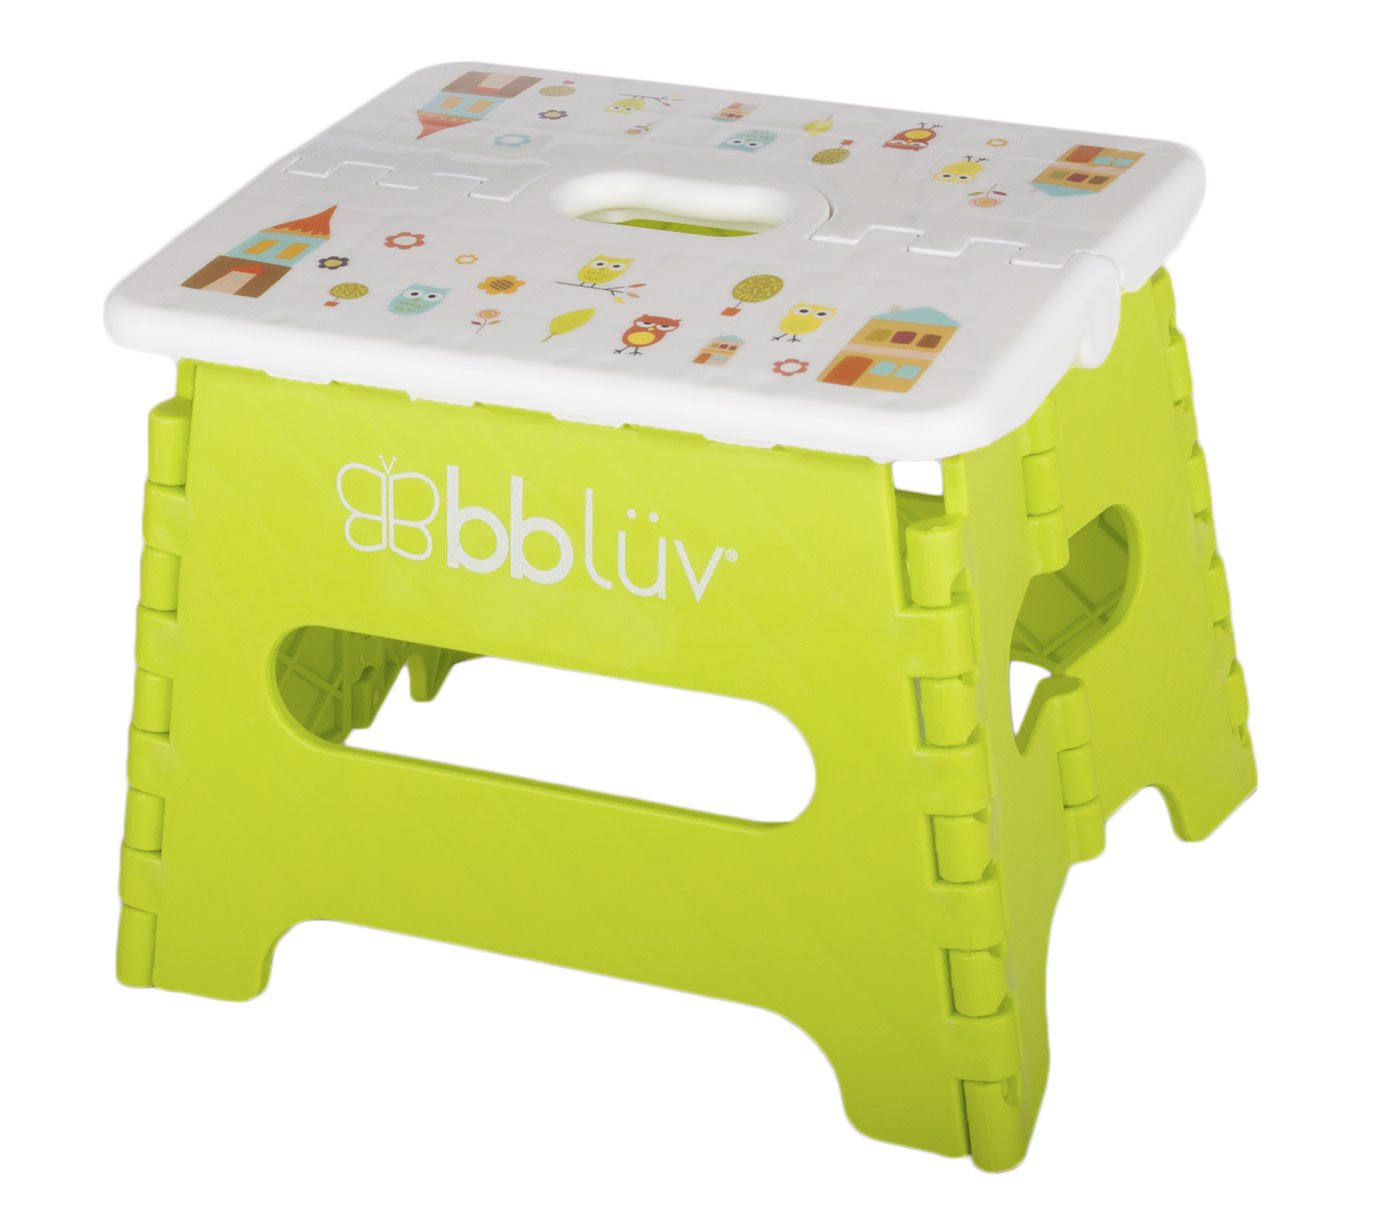 bblüv - Stëp - Foldable Step Stool - Safe, Compact and Easy to Clean (Lime) bbluv Group B0114-L